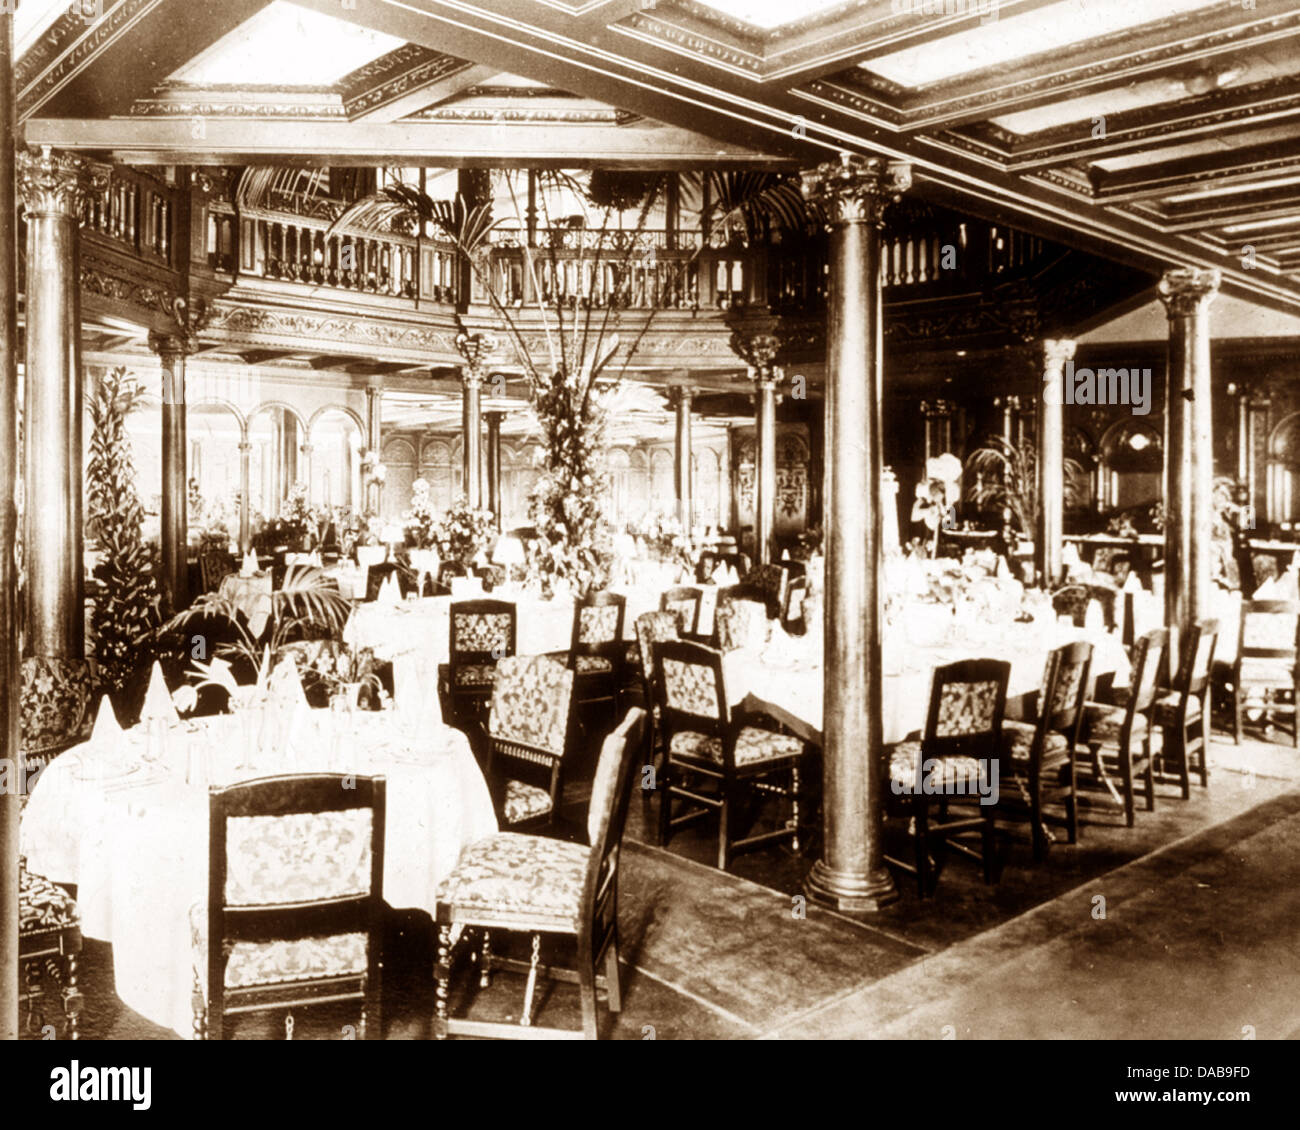 RMS Mauretania First Class Dining Saloon early 1900s - Stock Image